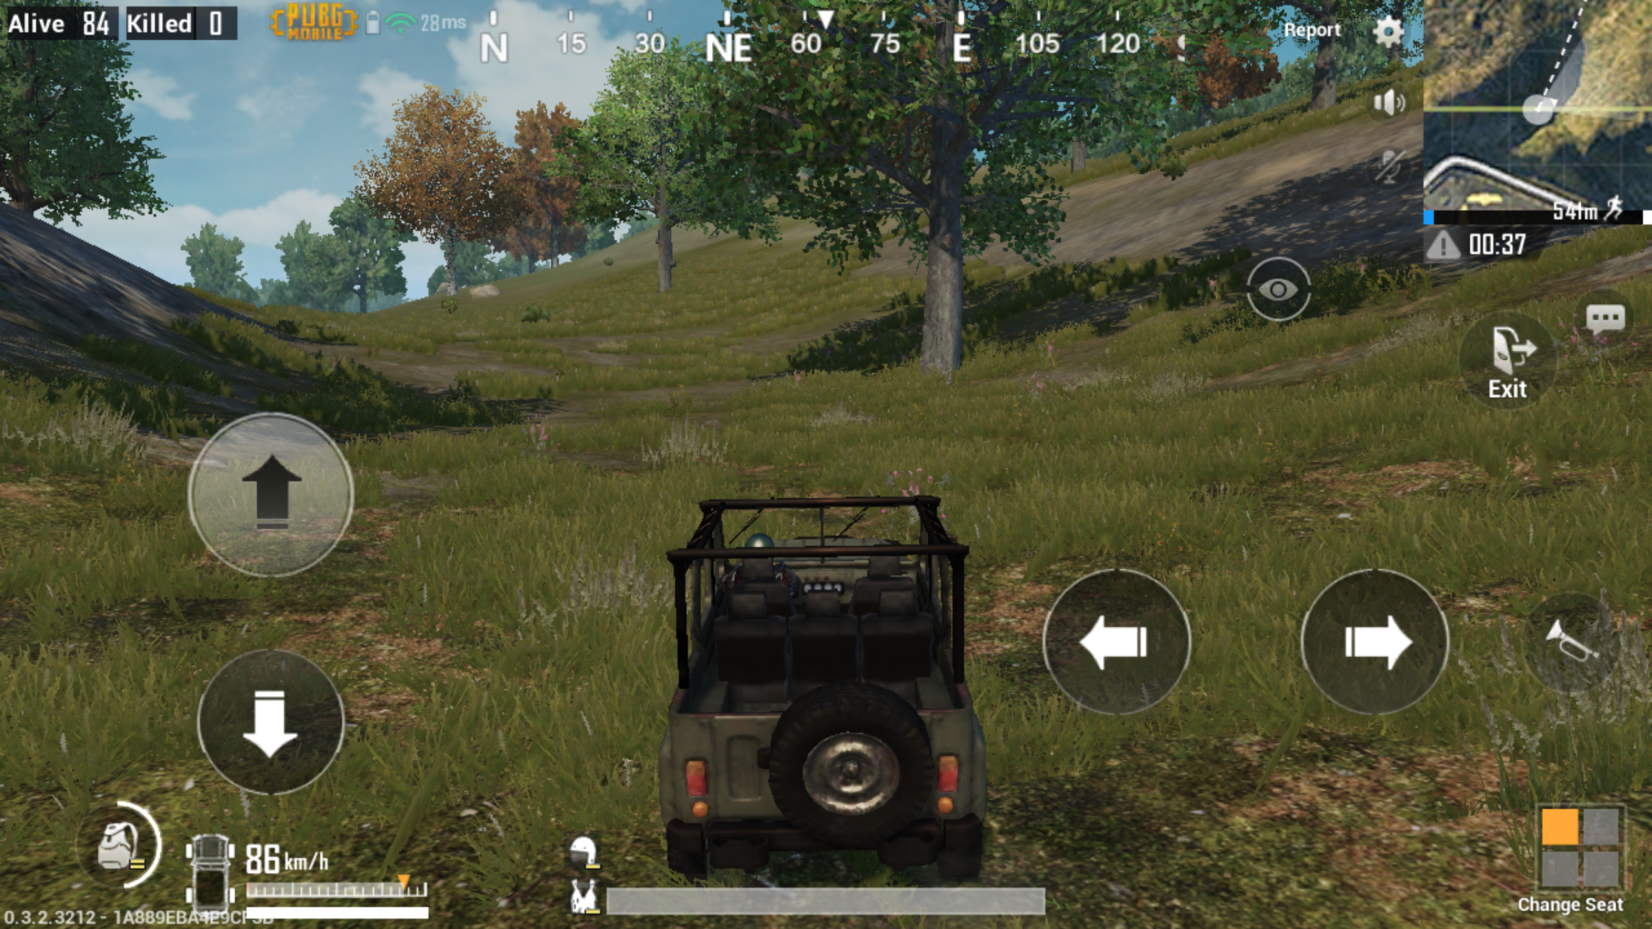 PUBG Mobile Cheats Guide: 5 Tips and Tricks to Victory